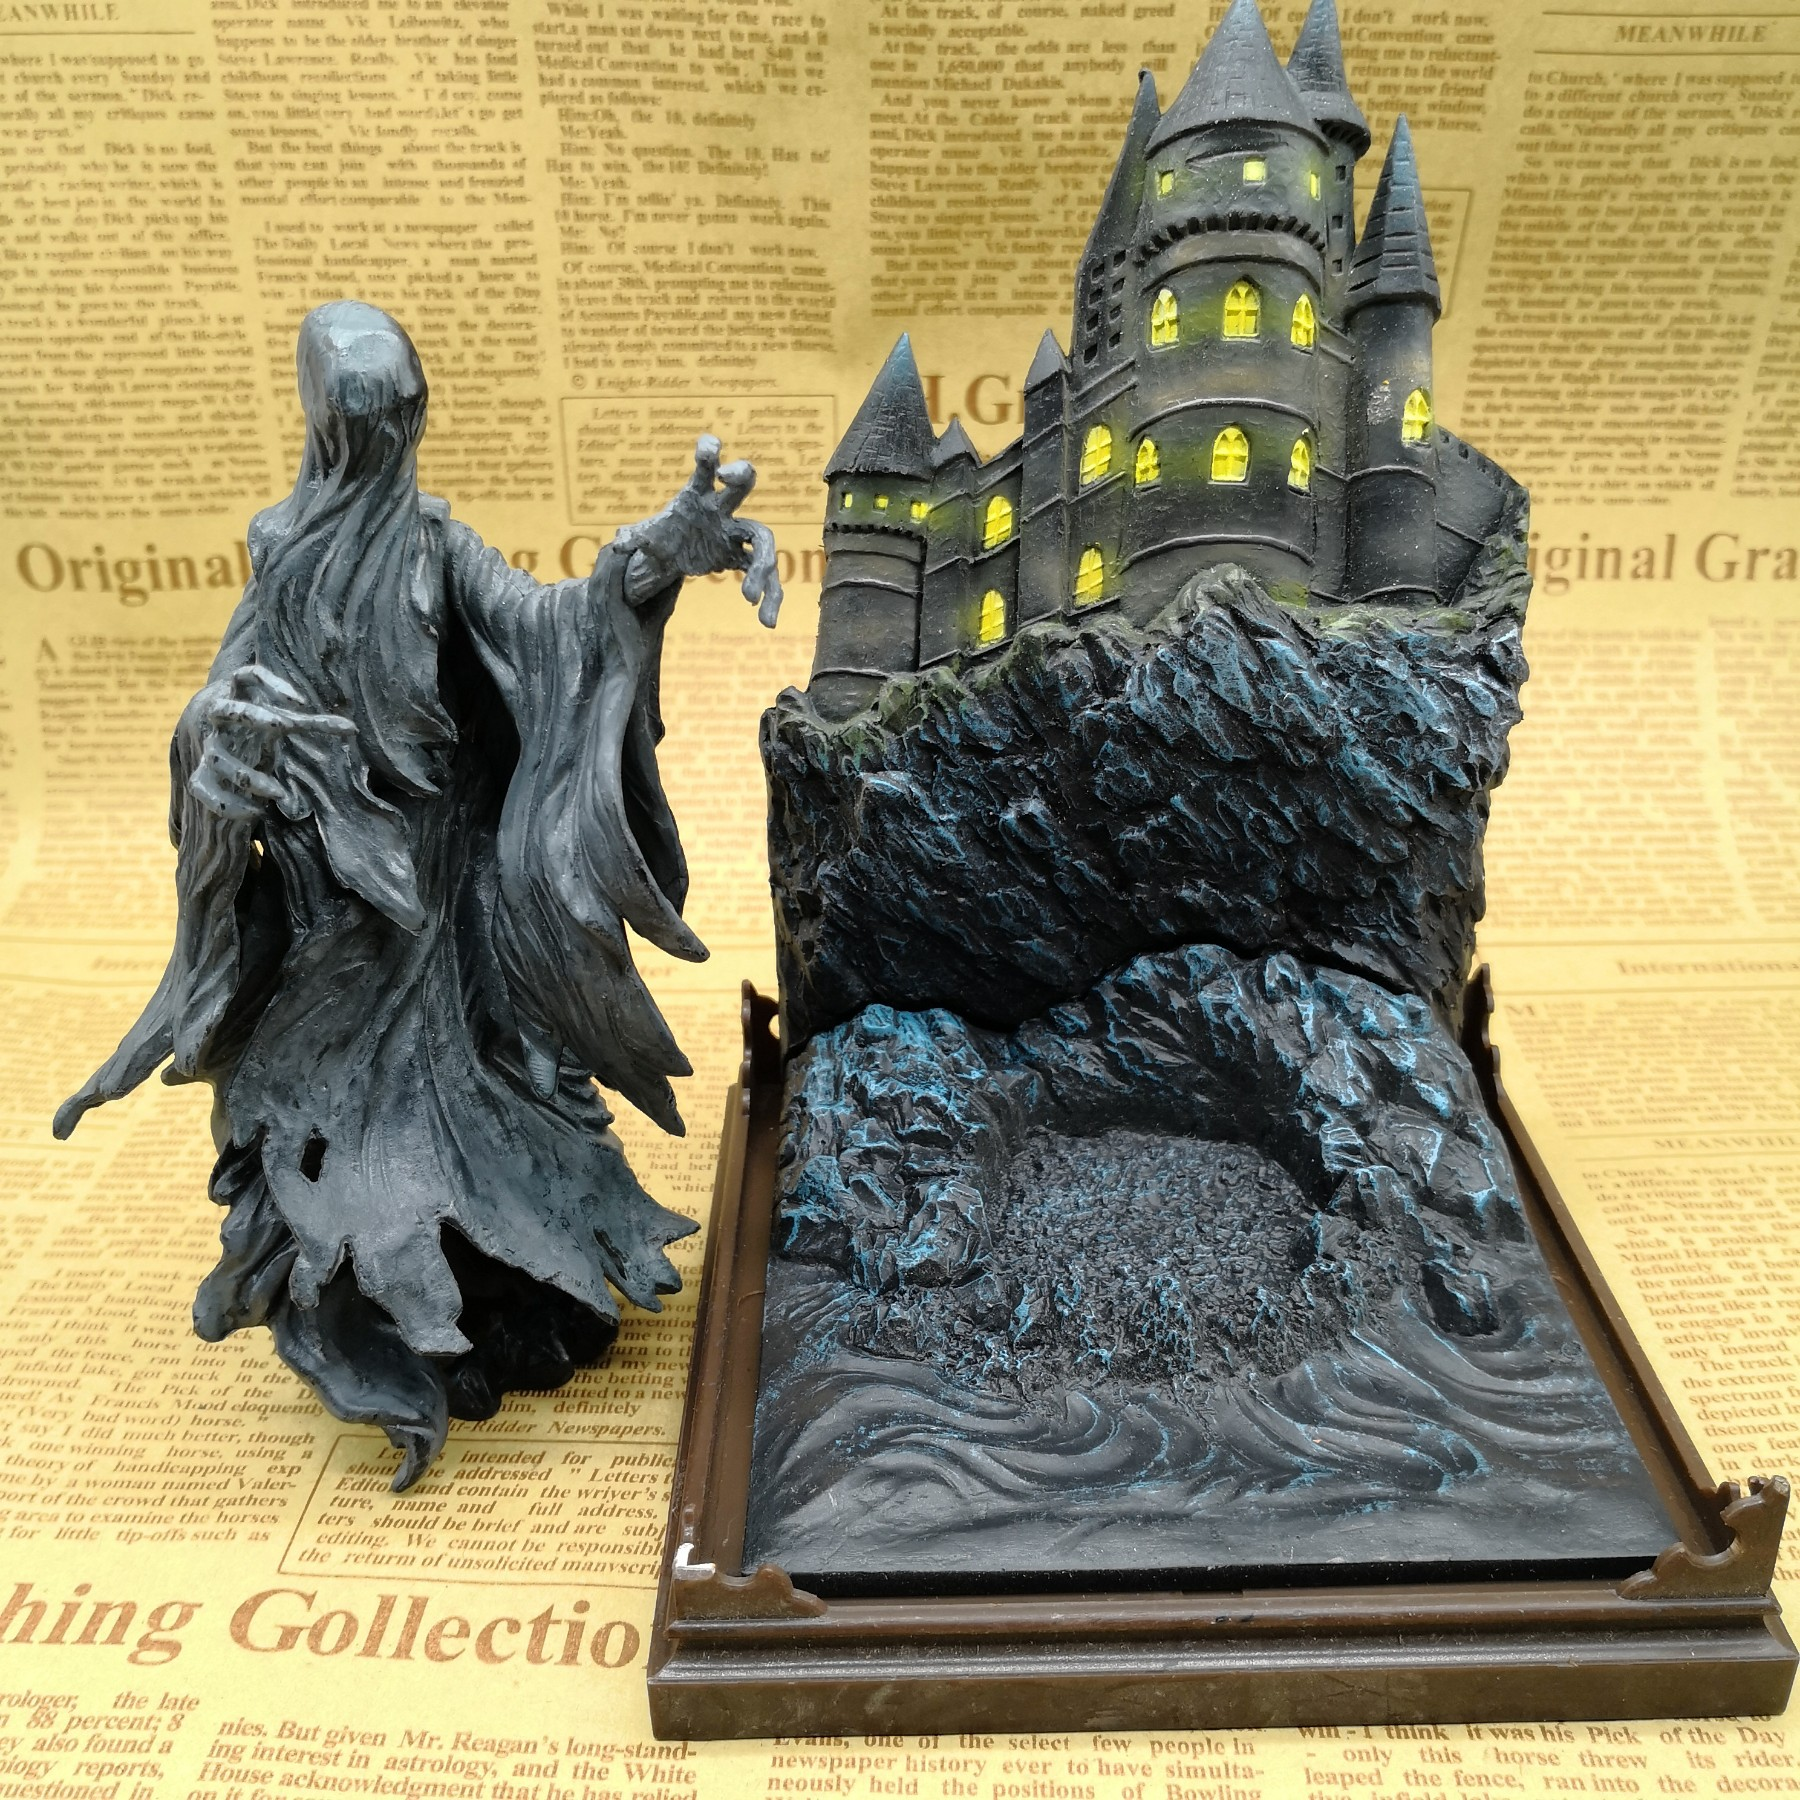 Harry Magic Creature Dementor 6-inch Doll Action Figure Statue Opp Bag Pack Model S155